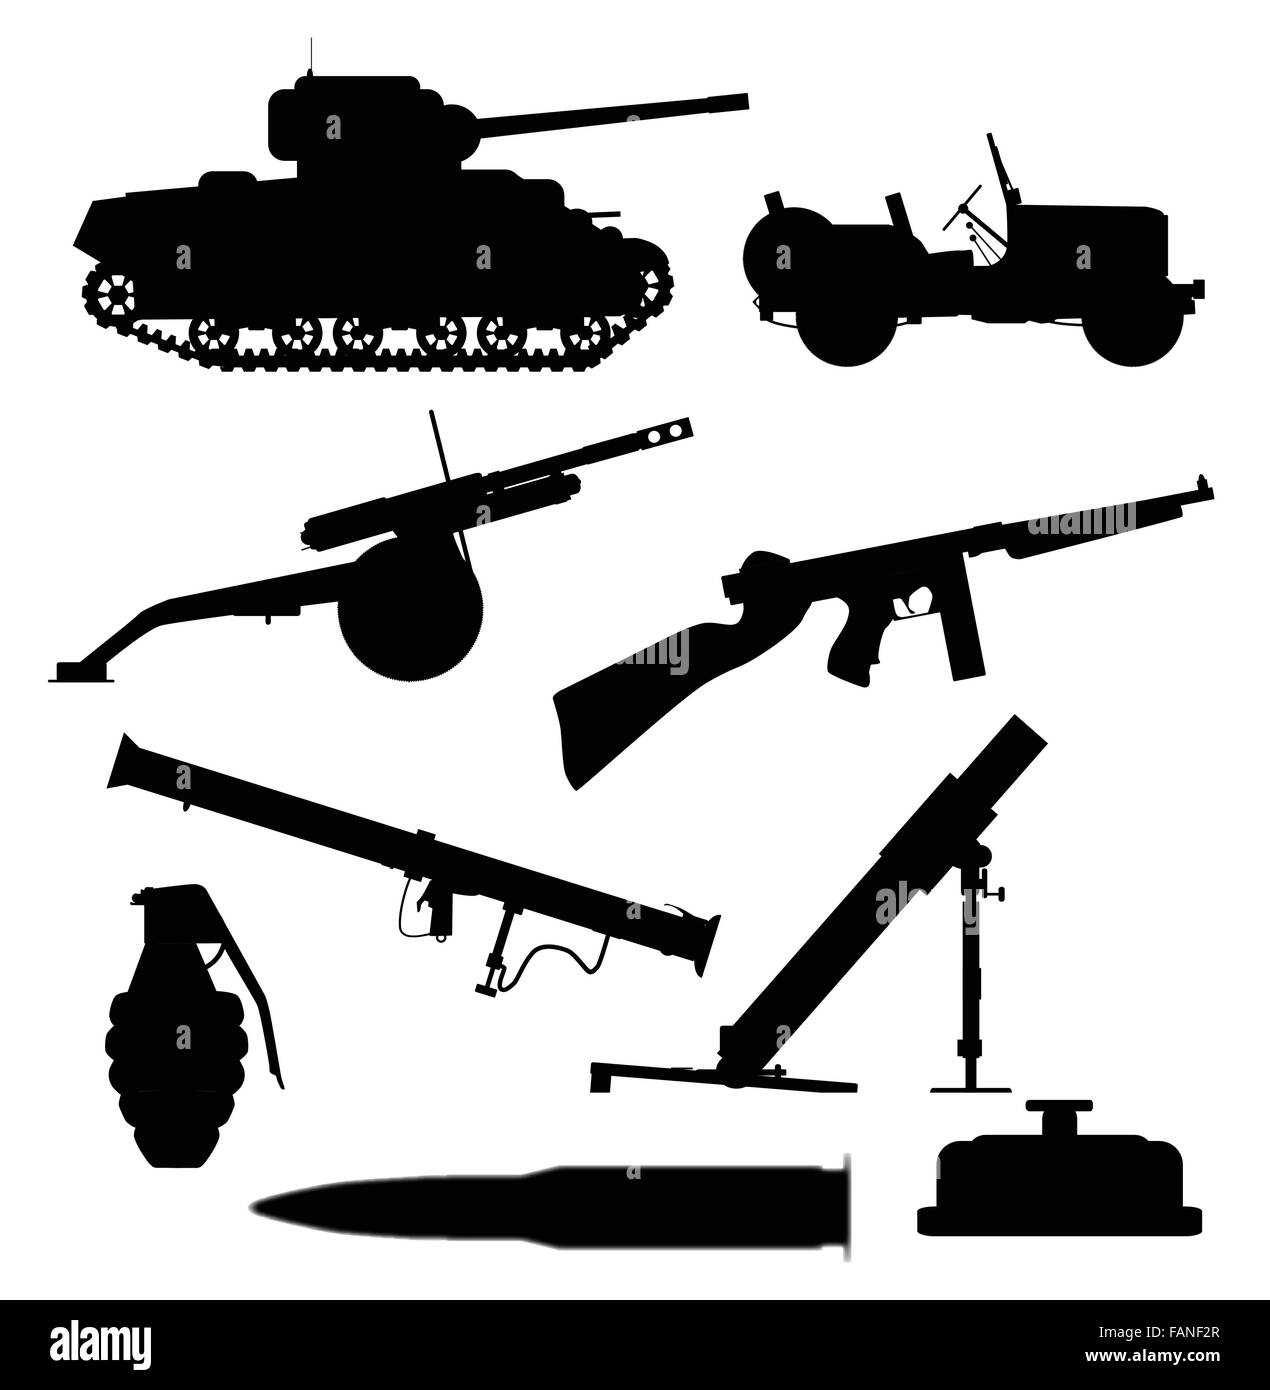 A collection of typical weapons of war in silhouette over a white background - Stock Vector